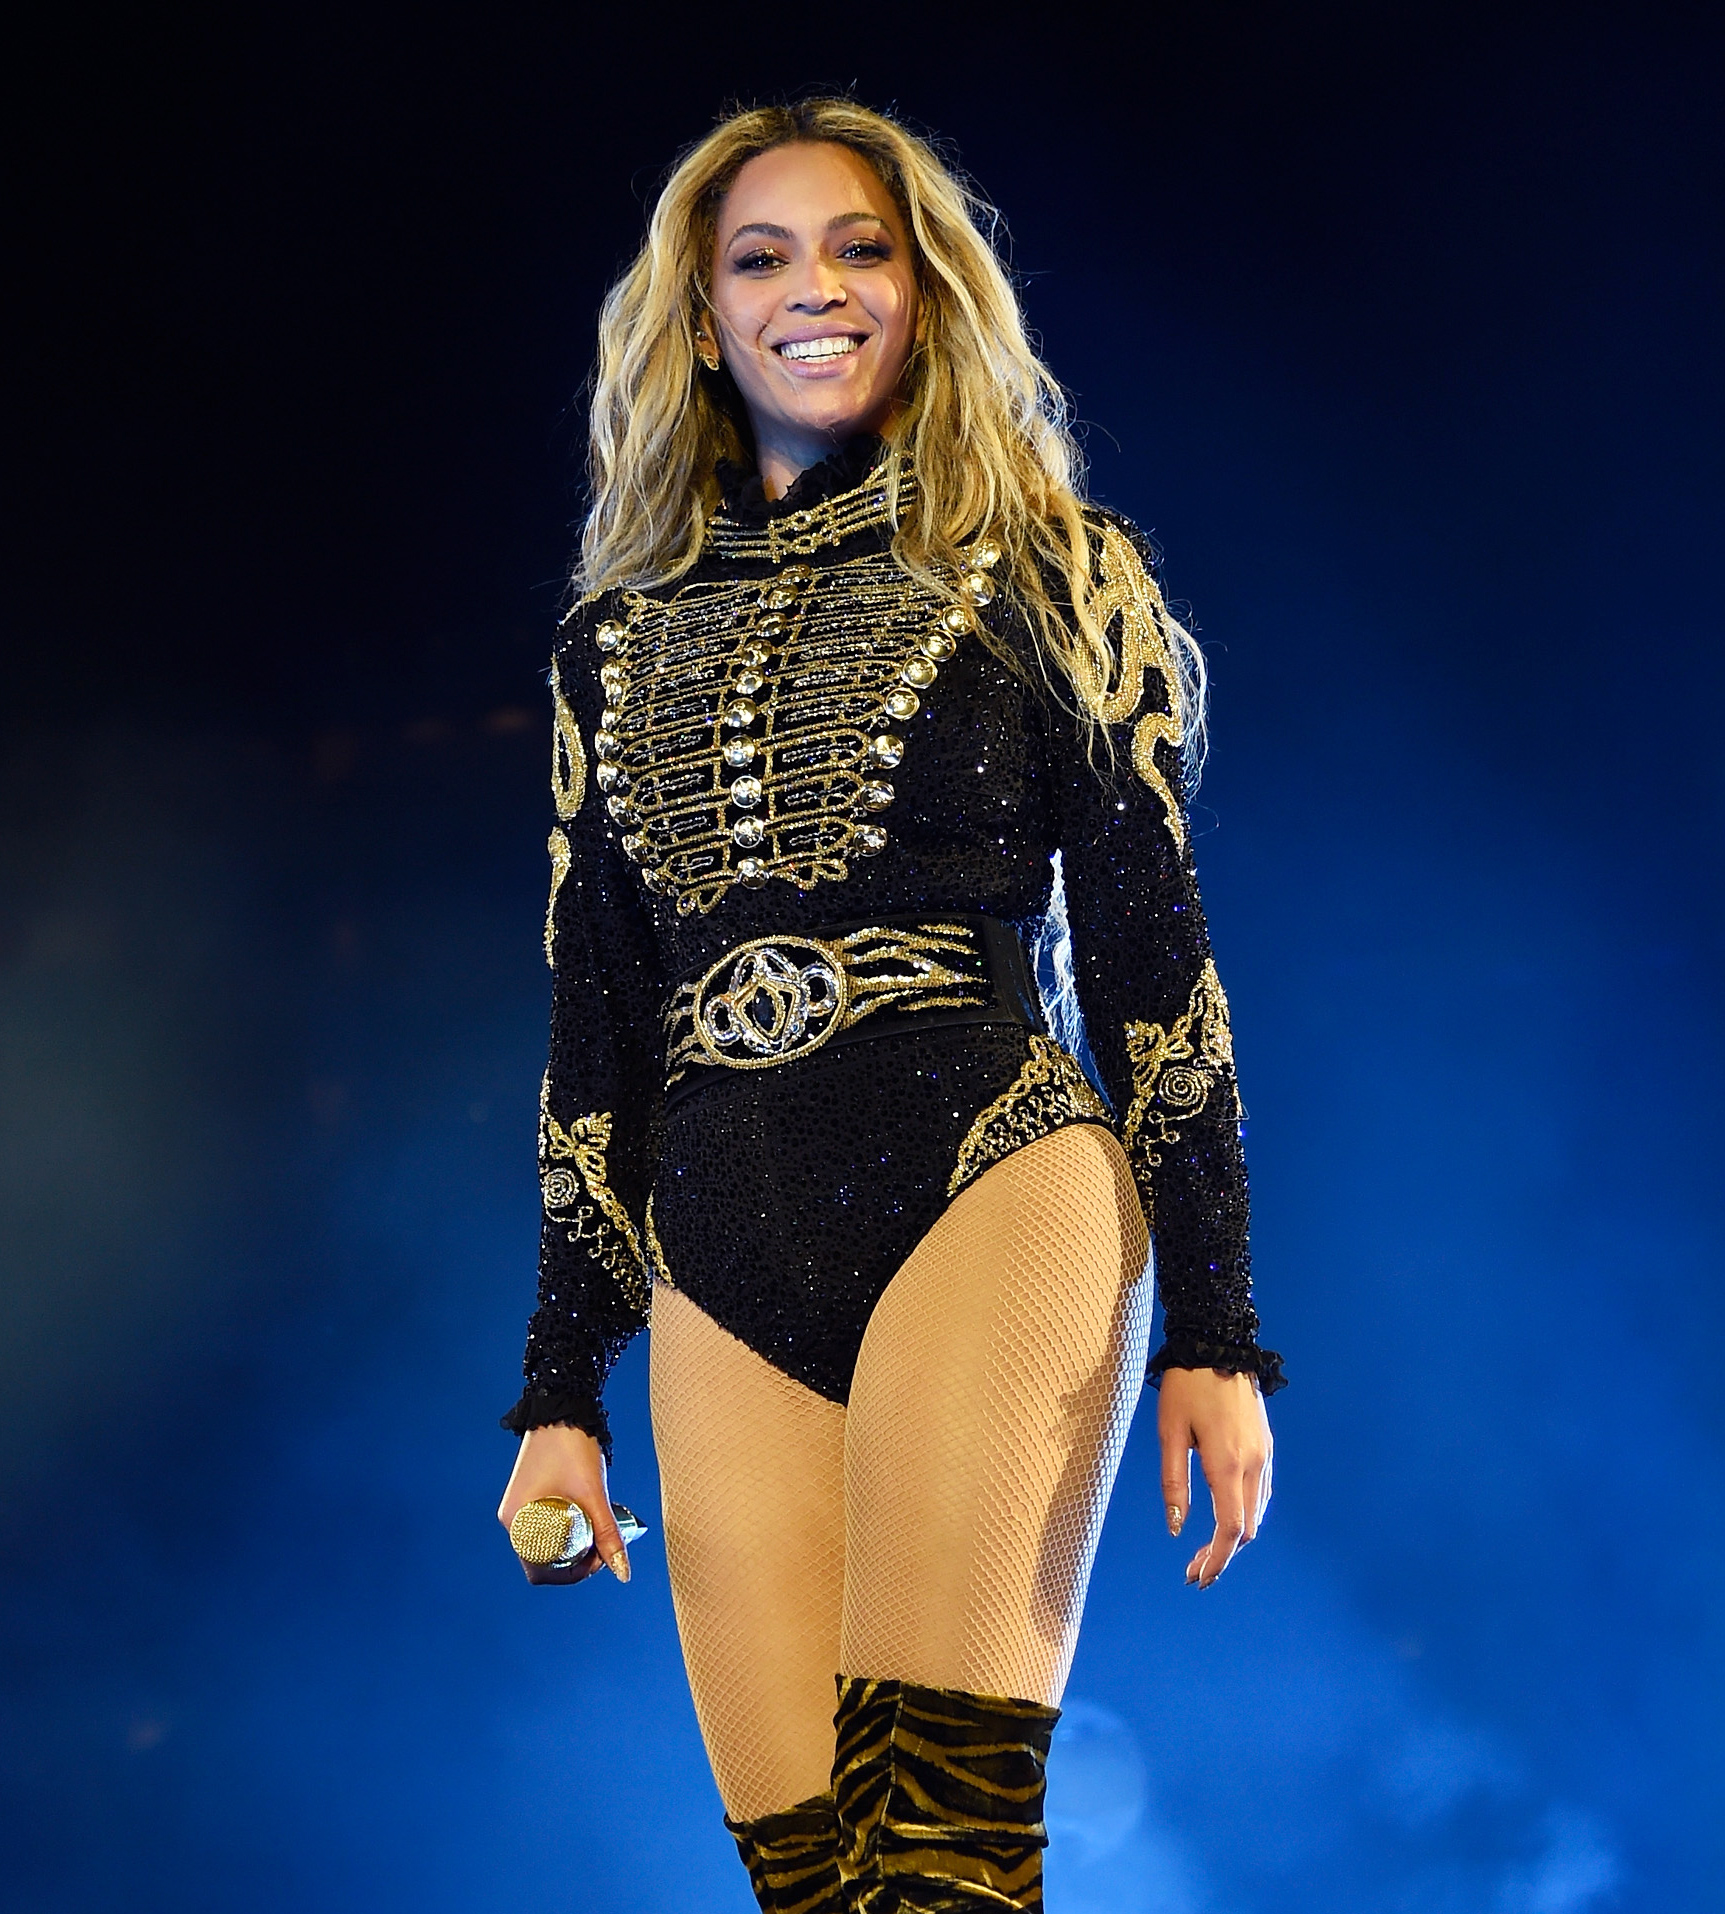 Beyoncé Knowles Stuns in Sicily Rocking a Fierce Bikini and Cover-Up Combo